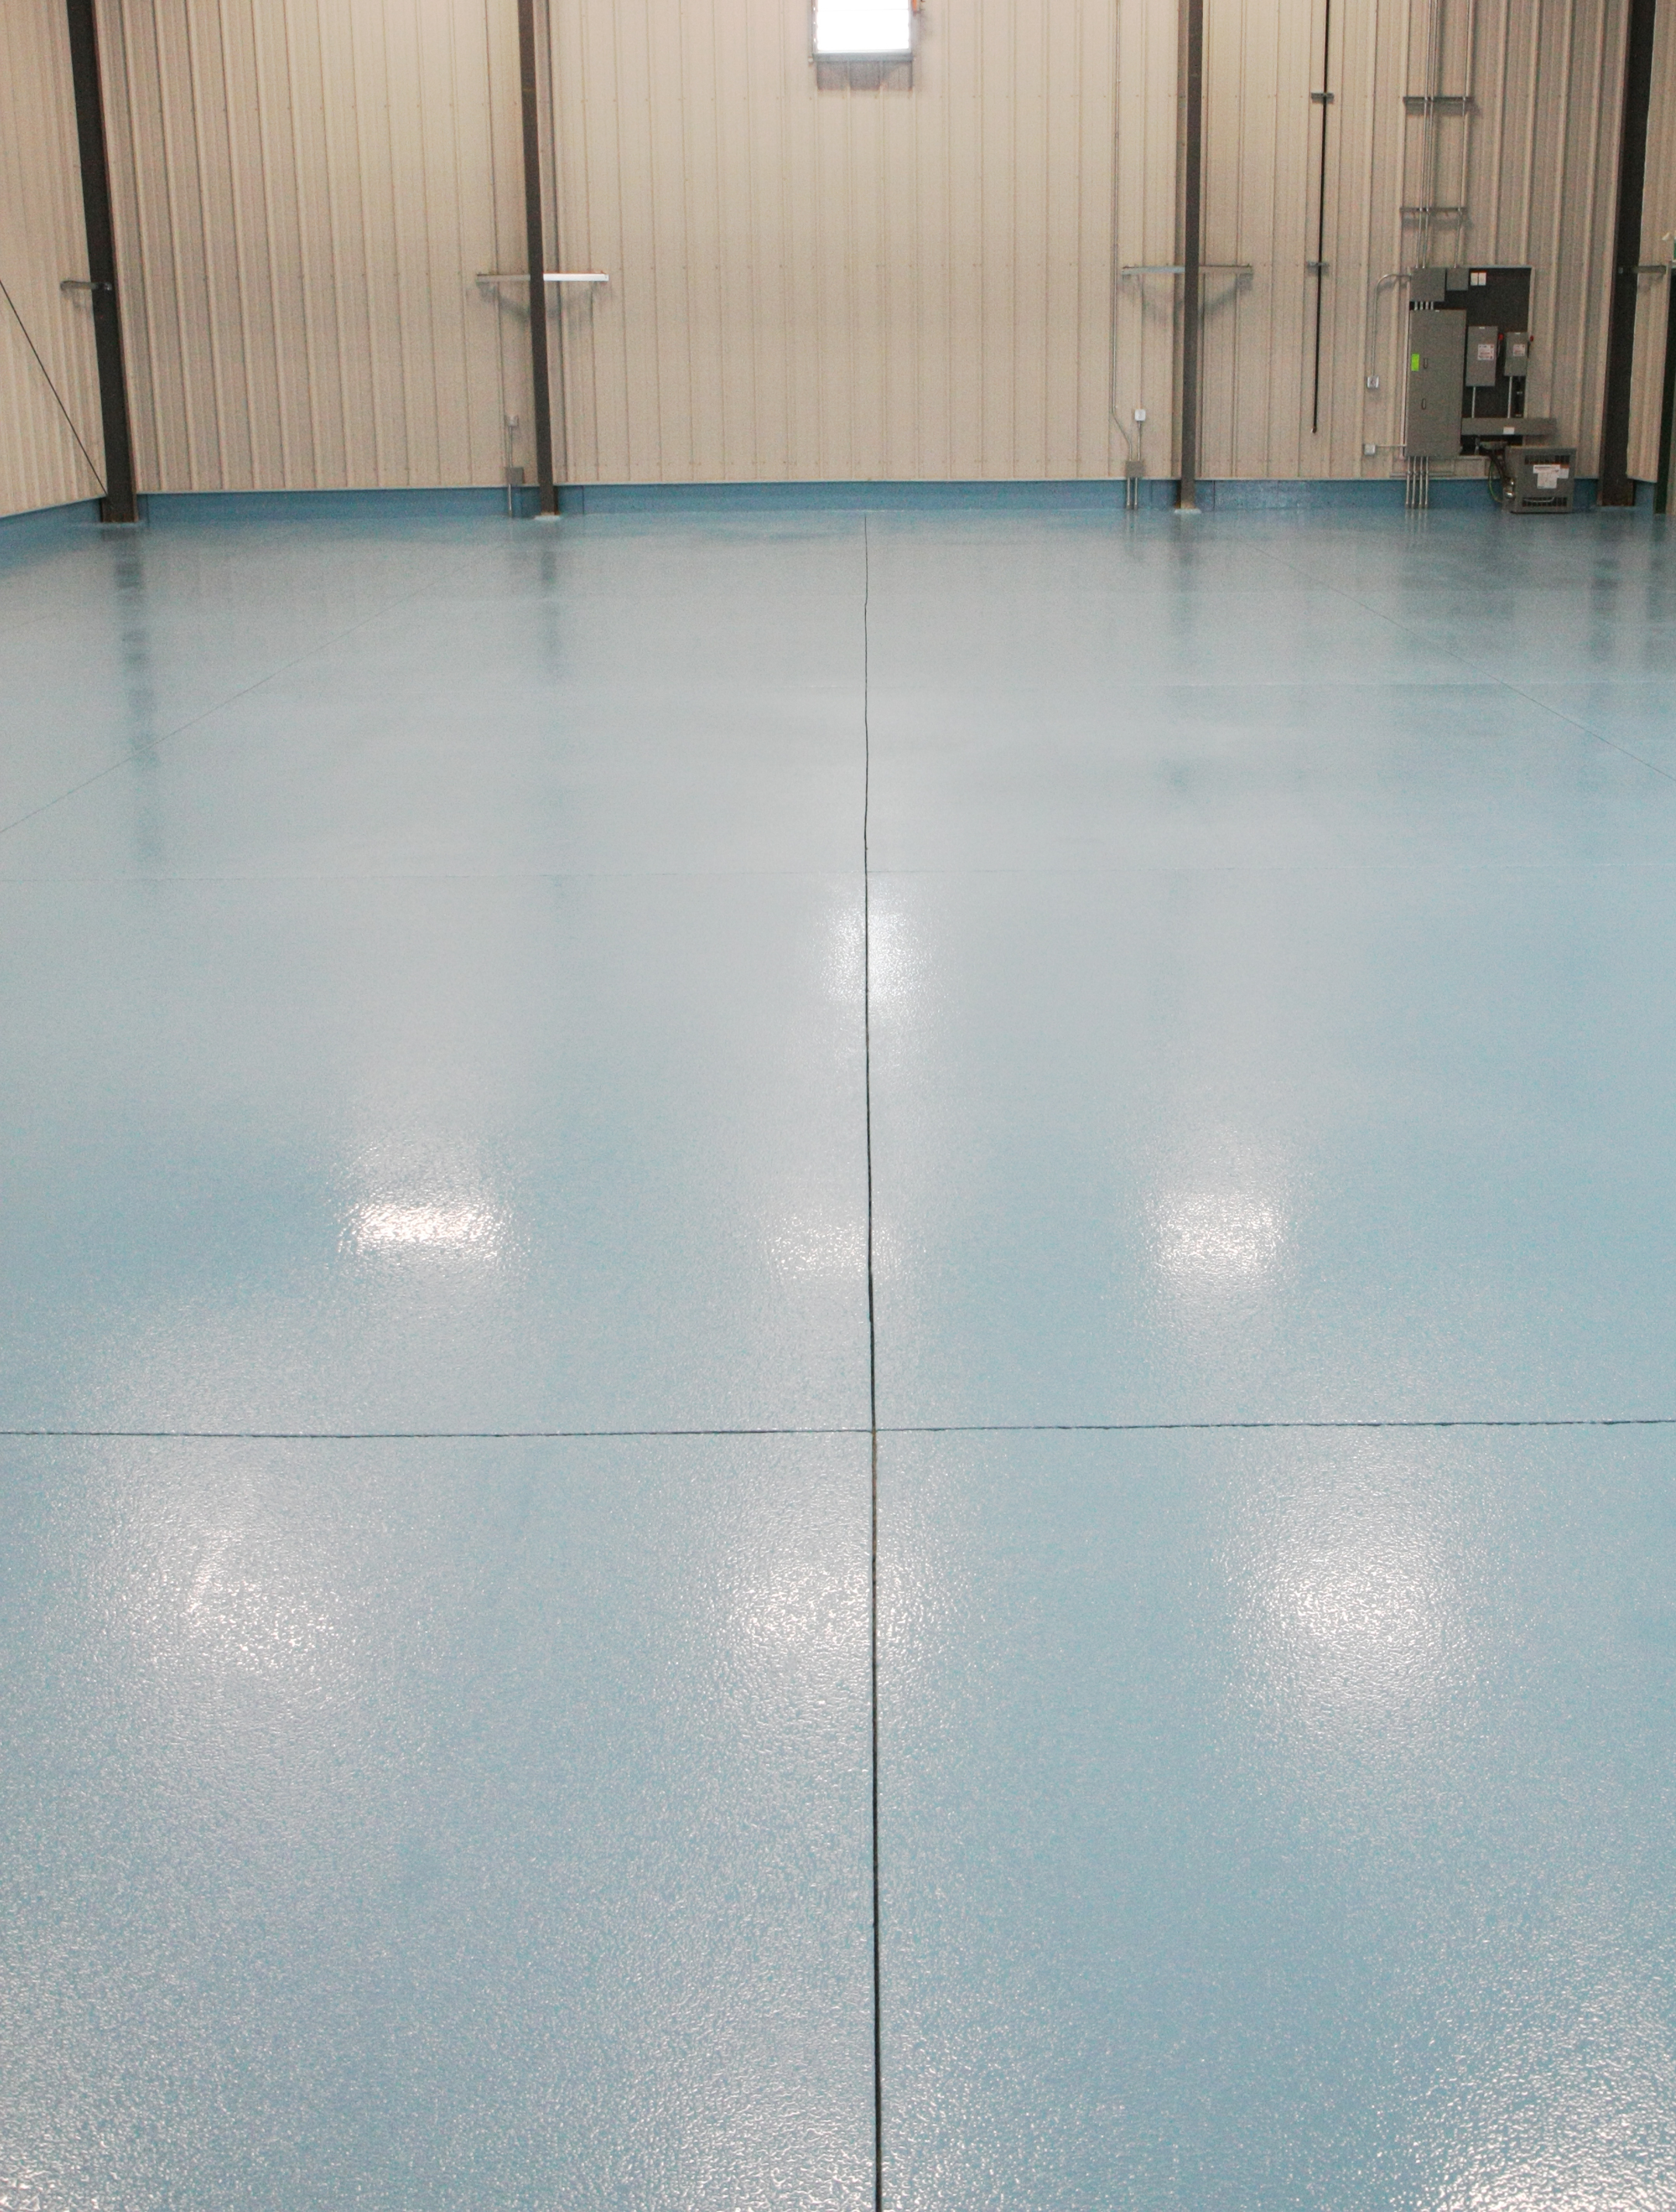 Commercial Epoxy Floors - Commercial Floor coatings need to be durable, decorative and easy to clean. Our Epoxy Floor Coatings allow your concrete to be stronger, ease maintenance and show off your business or work.